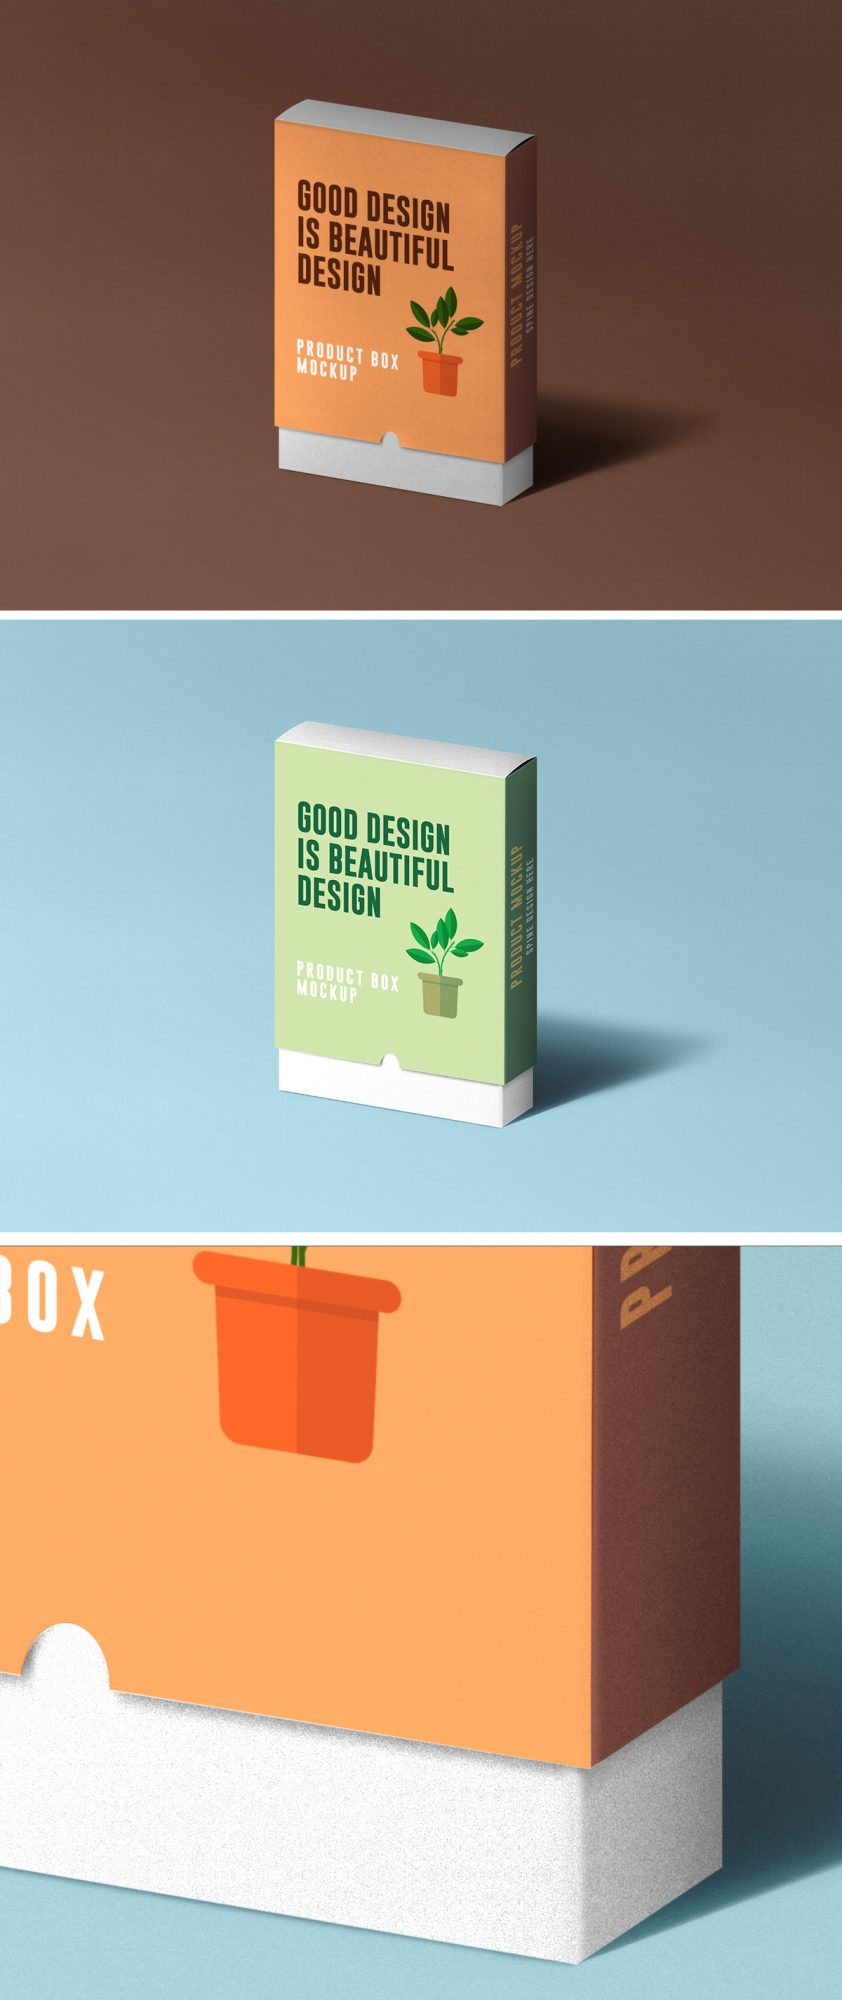 2090+ Product Box Mockups Free Download for Branding